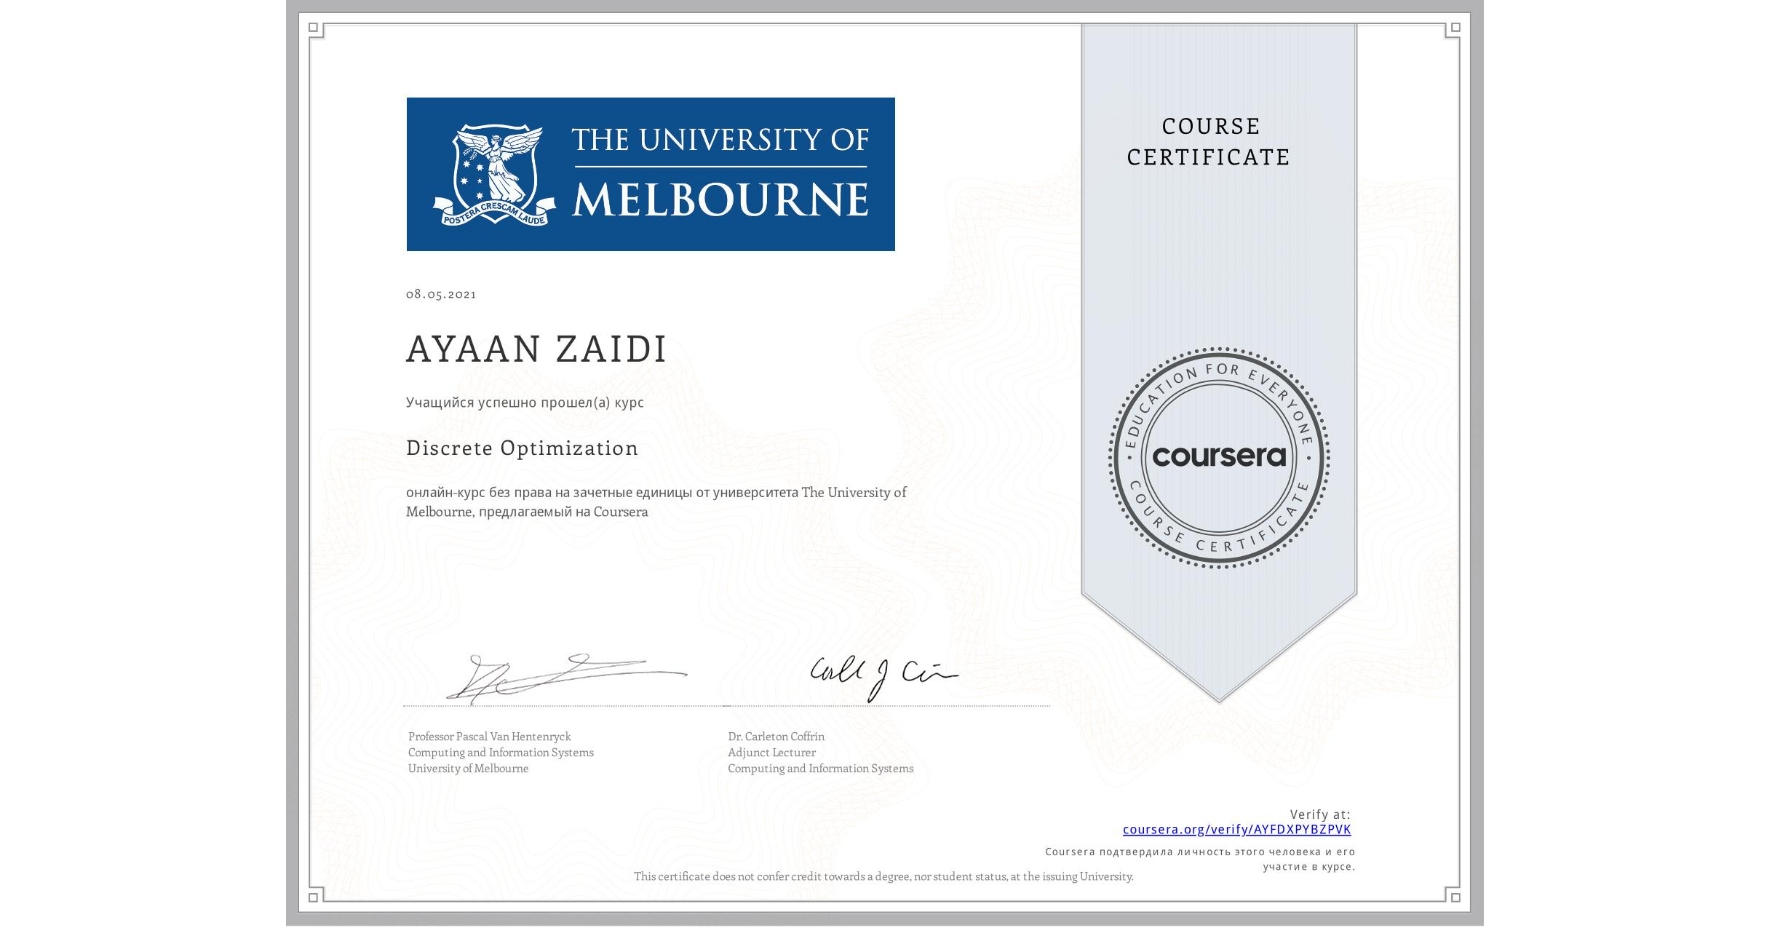 View certificate for Ayaan Zaidi, Discrete Optimization, an online non-credit course authorized by The University of Melbourne and offered through Coursera